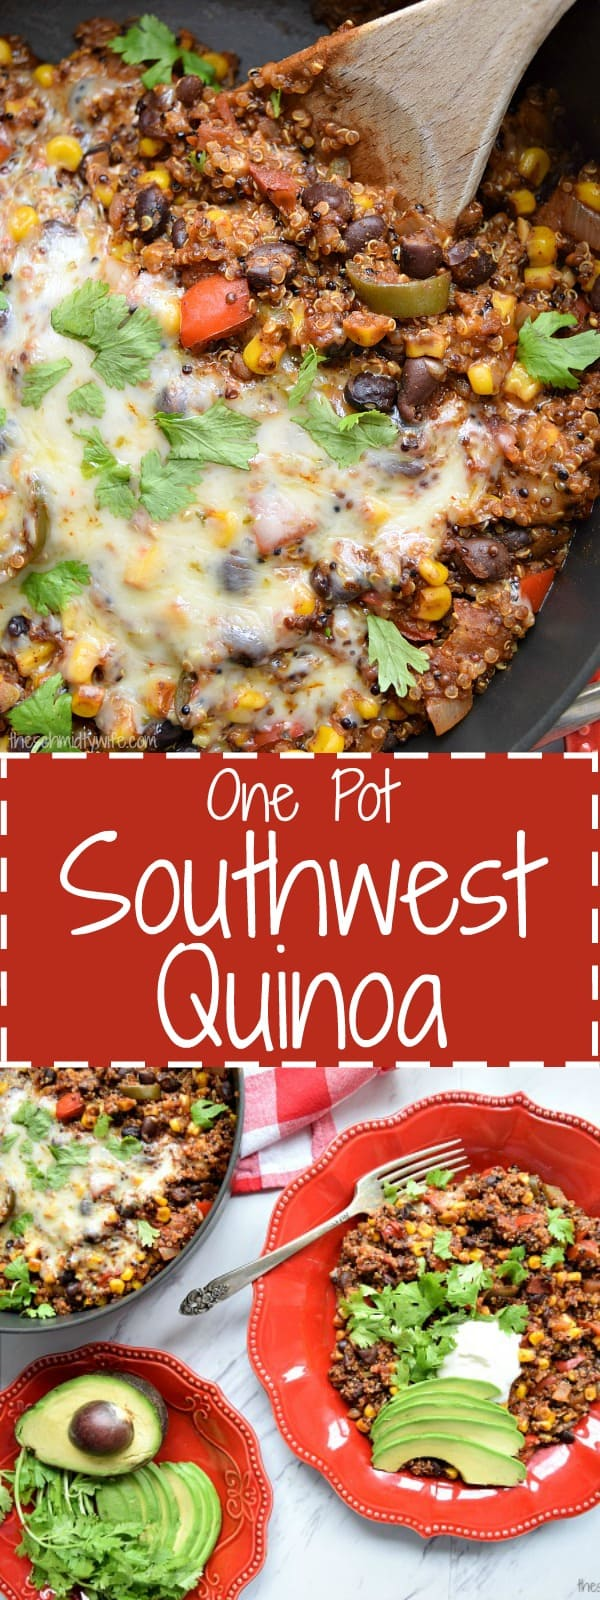 One Pot Southwest Quinoa